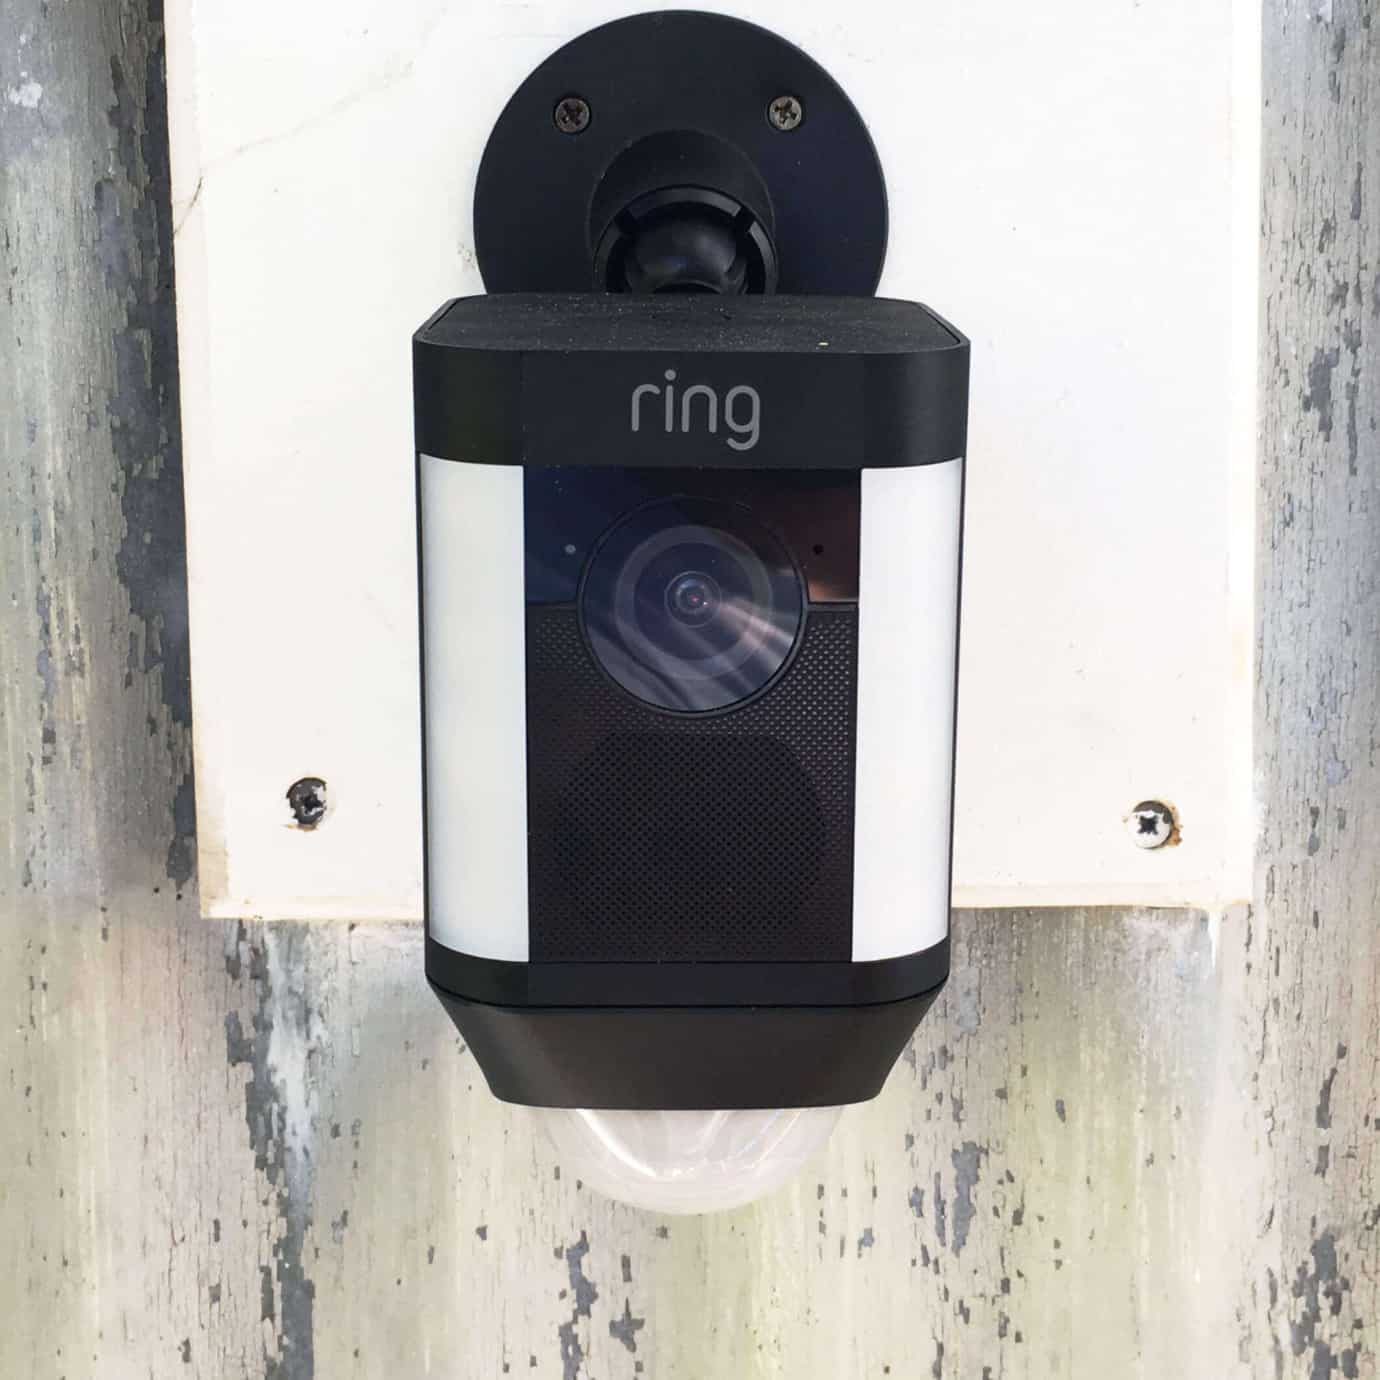 Ring Solar Spotlight Cam